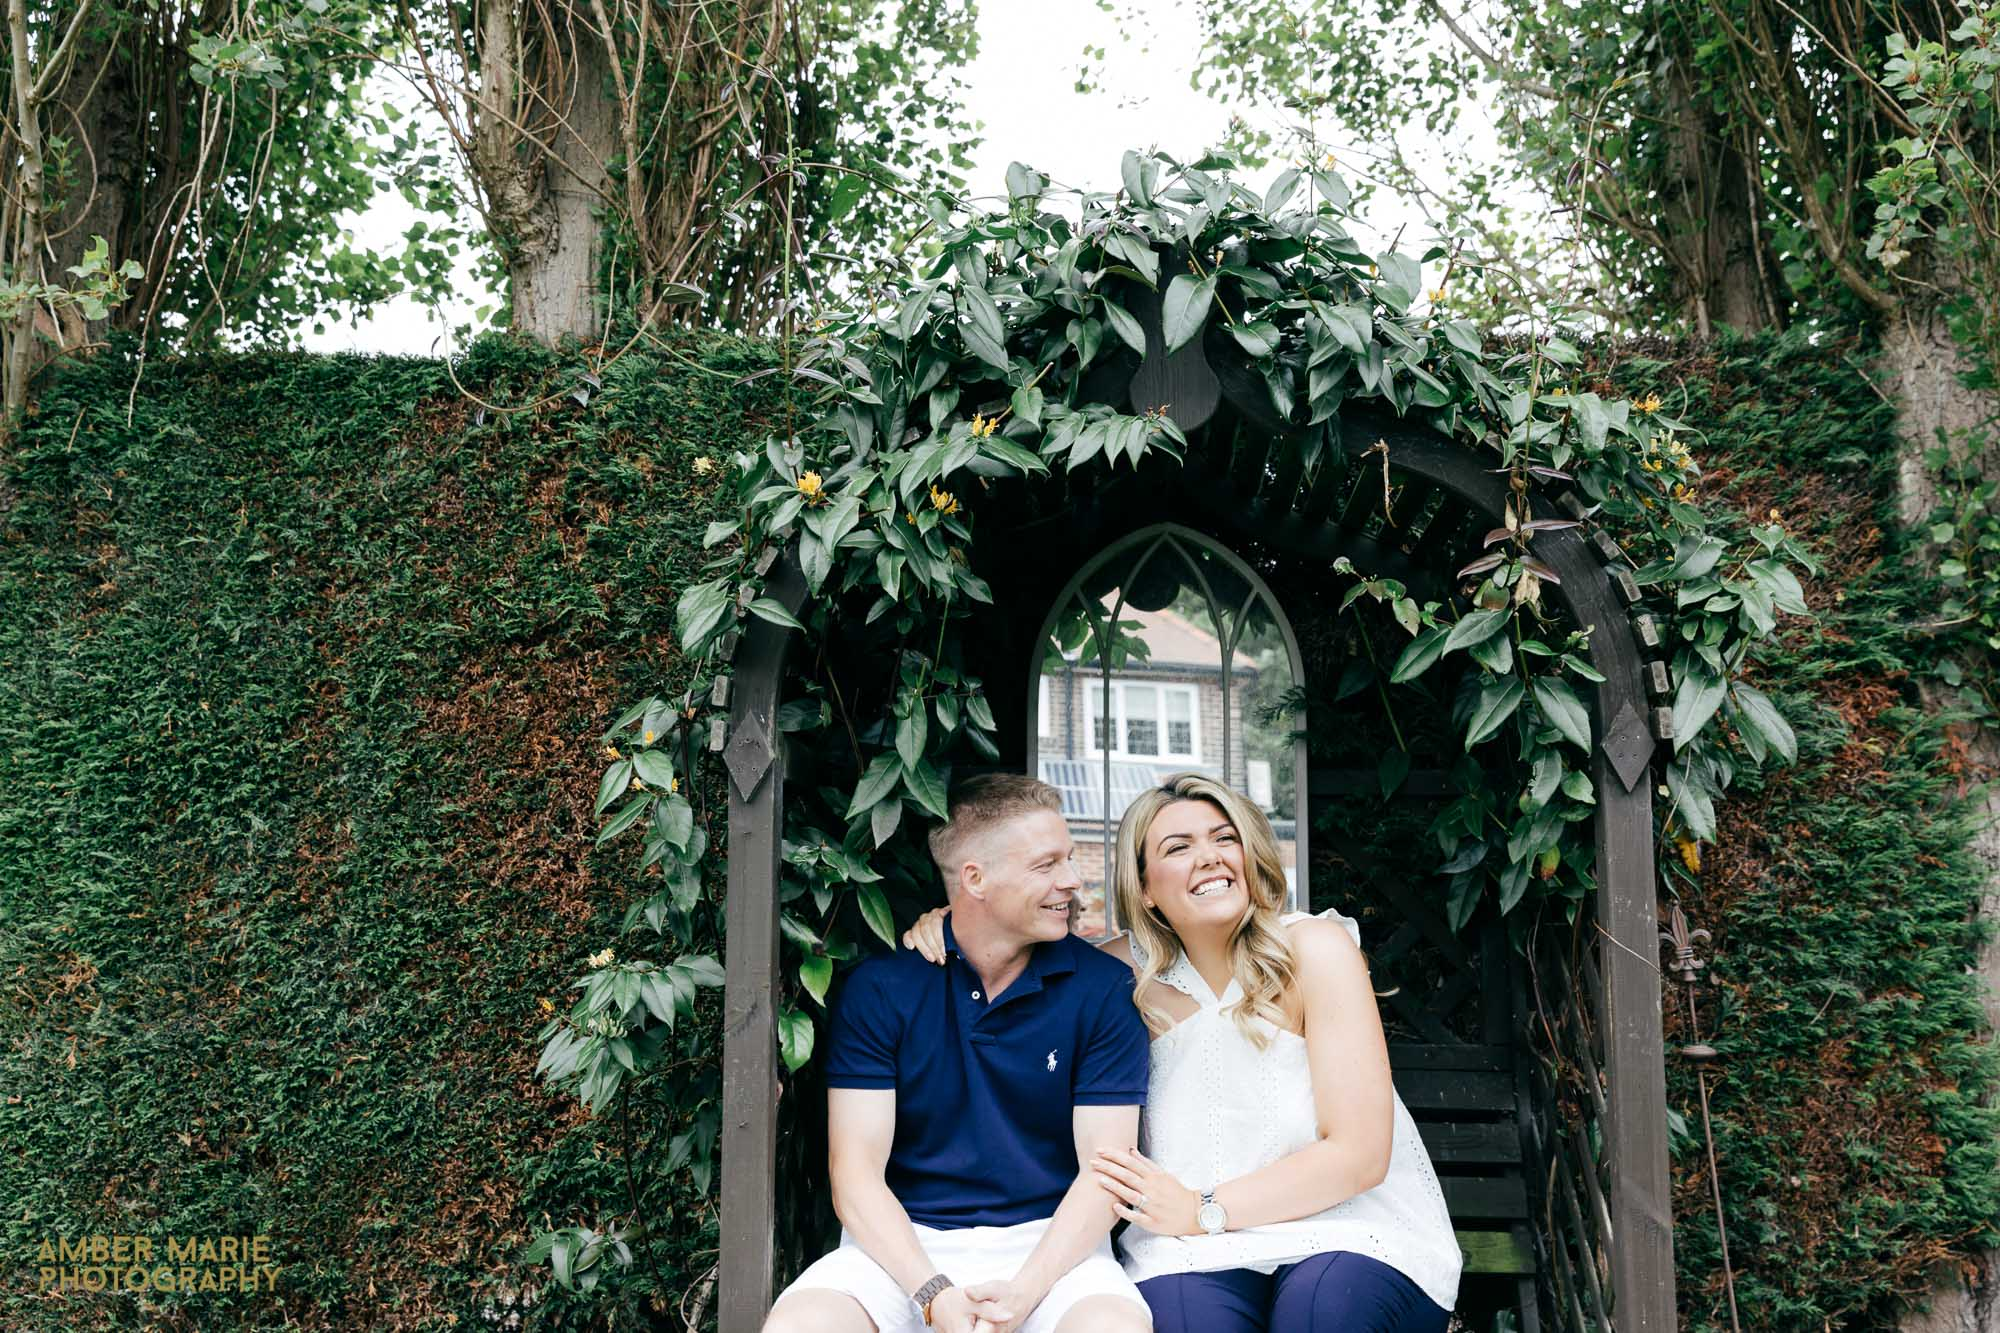 Engagement Photography by Gloucestershire Wedding Photographer Amber Marie Photography